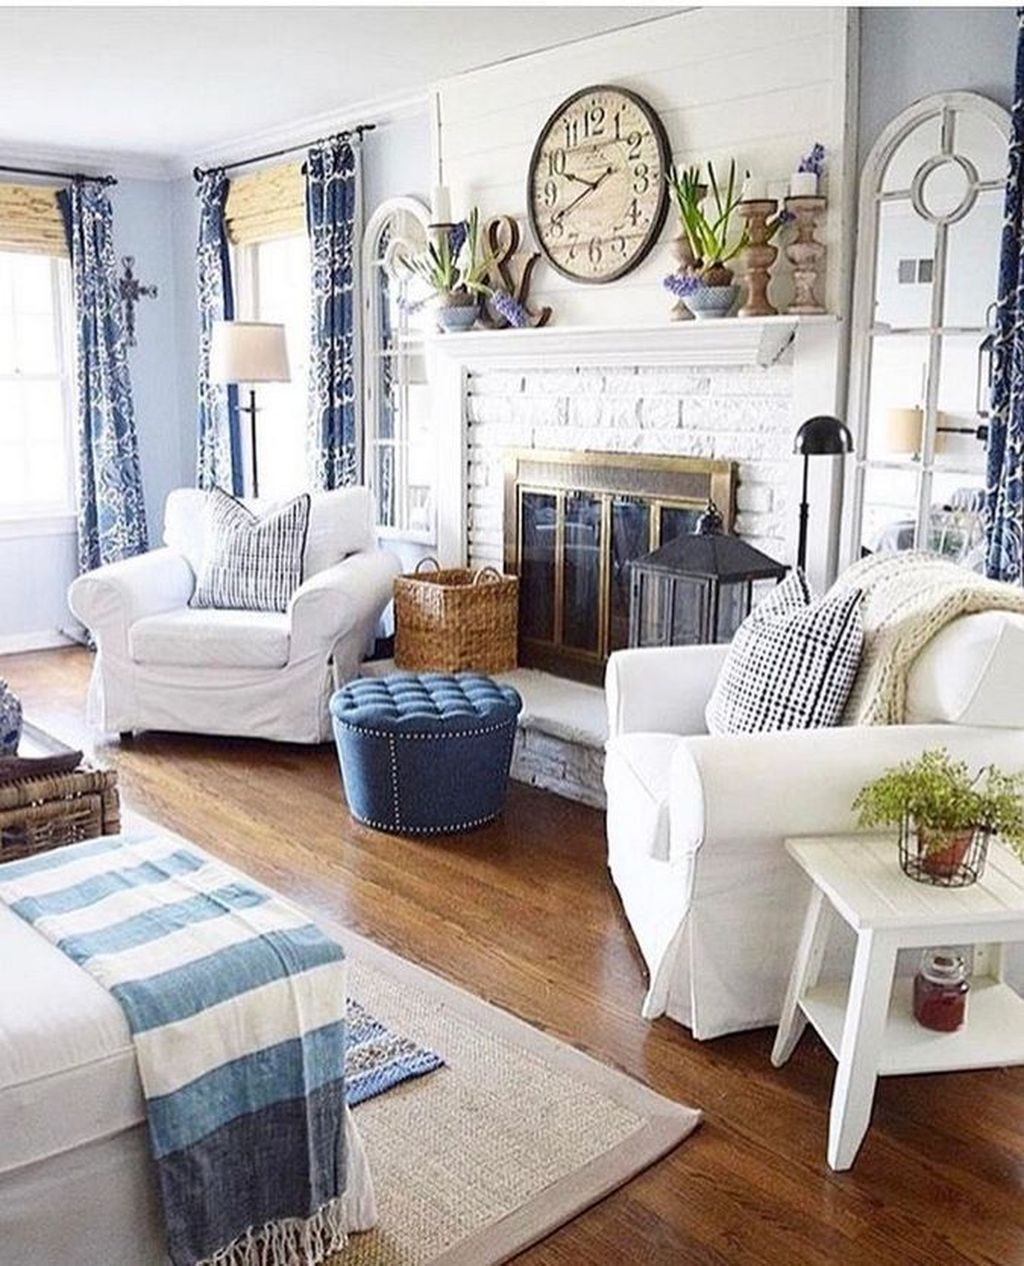 45 Magnificient Coastal Living Room Decor Ideas - HOMYFEED #coastallivingrooms